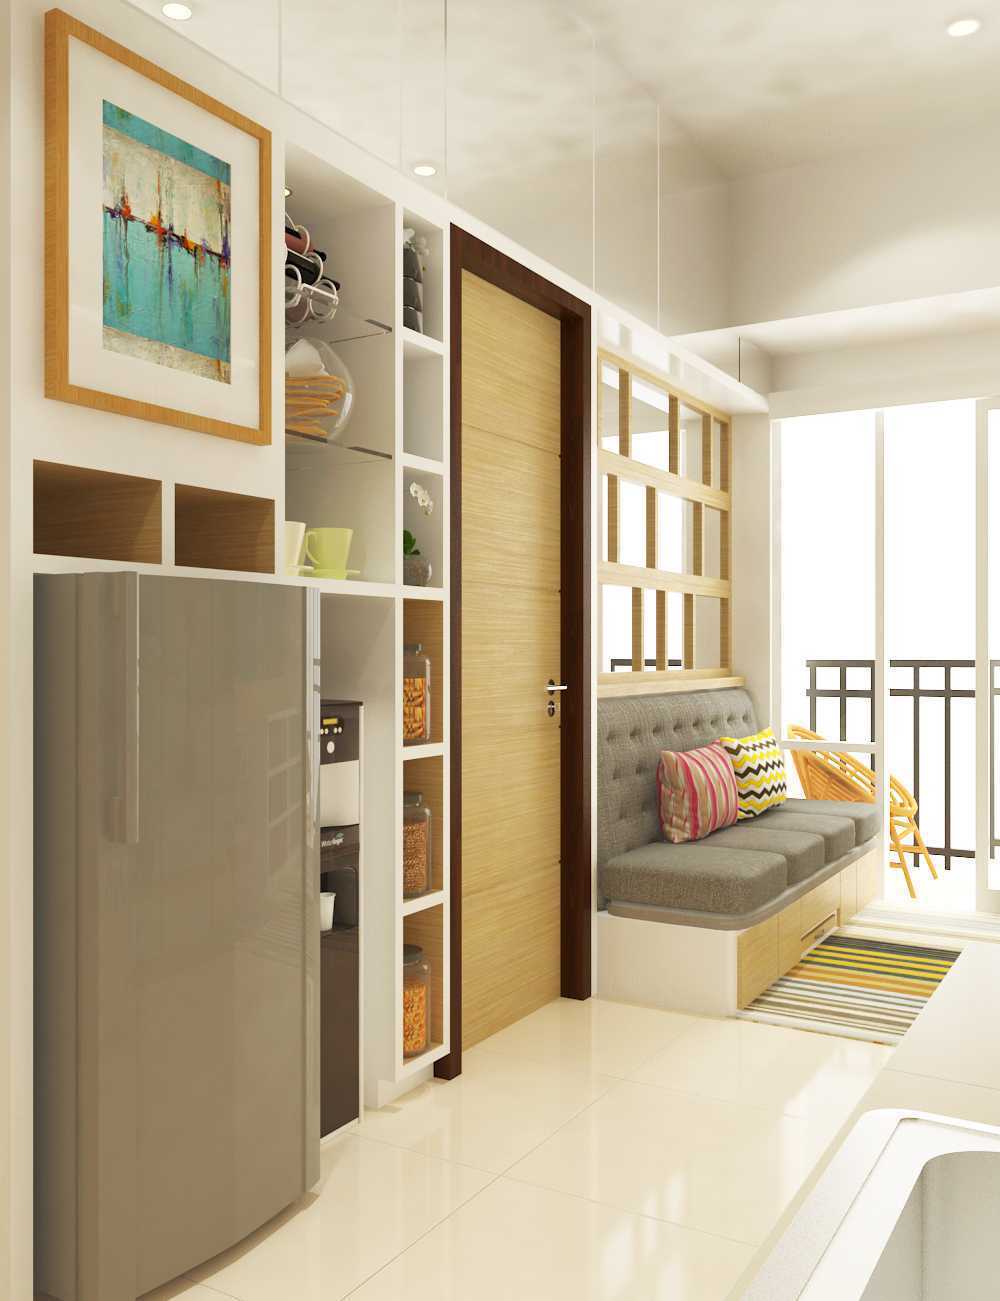 Miv Architects (Ar. Muhammad Ikhsan Hamiru, Iai & Partners) Interior Design Of Apartment Unit Makassar, South Sulawesi, Indonesia Makassar, South Sulawesi, Indonesia Apartment Room Design Kontemporer 29125